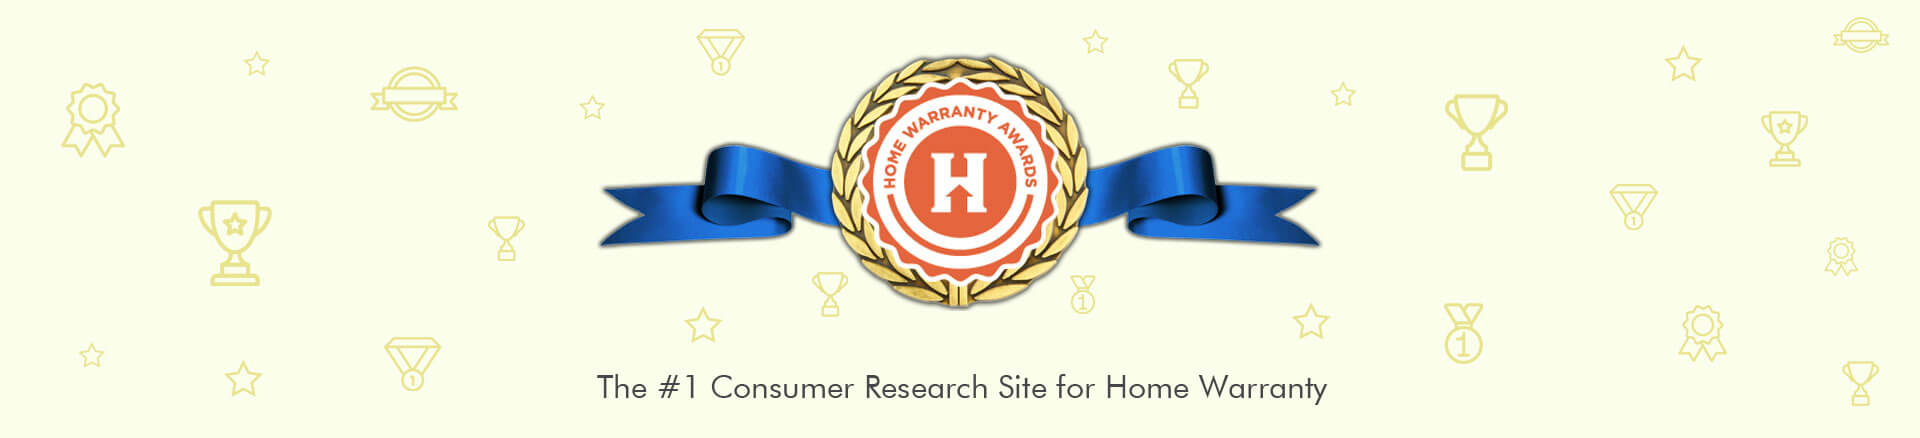 2017 Home Warranty Awards for Home Warranty Companies